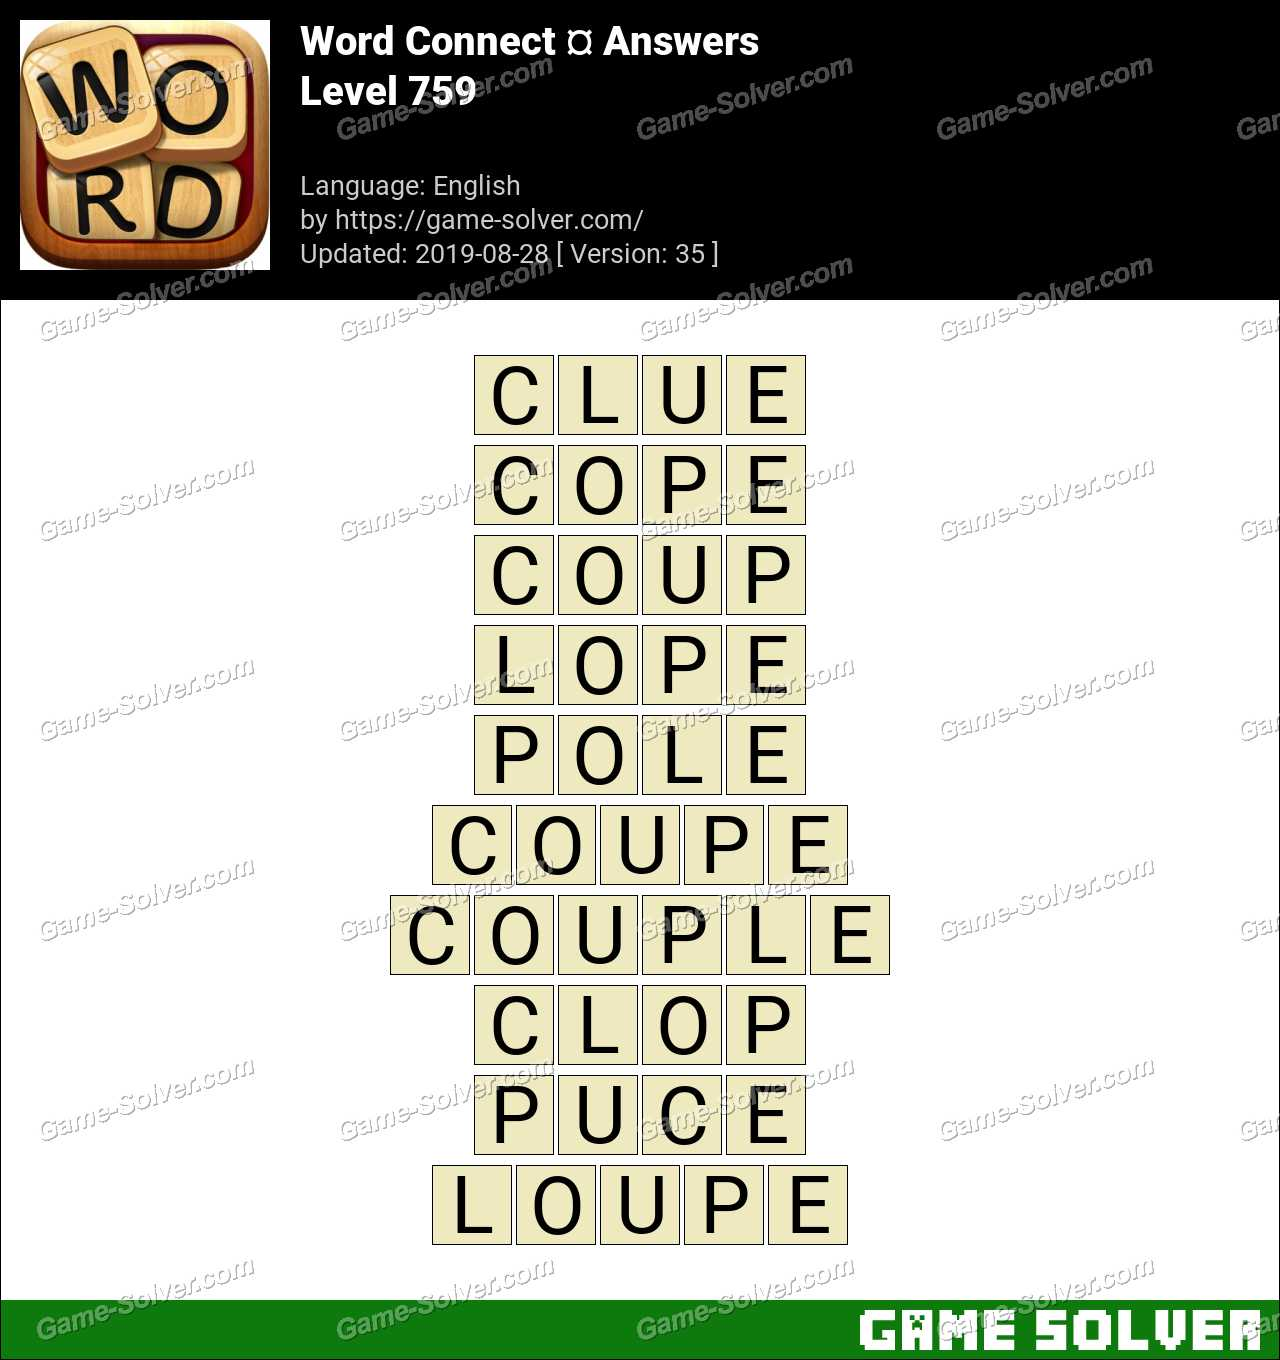 Word Connect Level 759 Answers